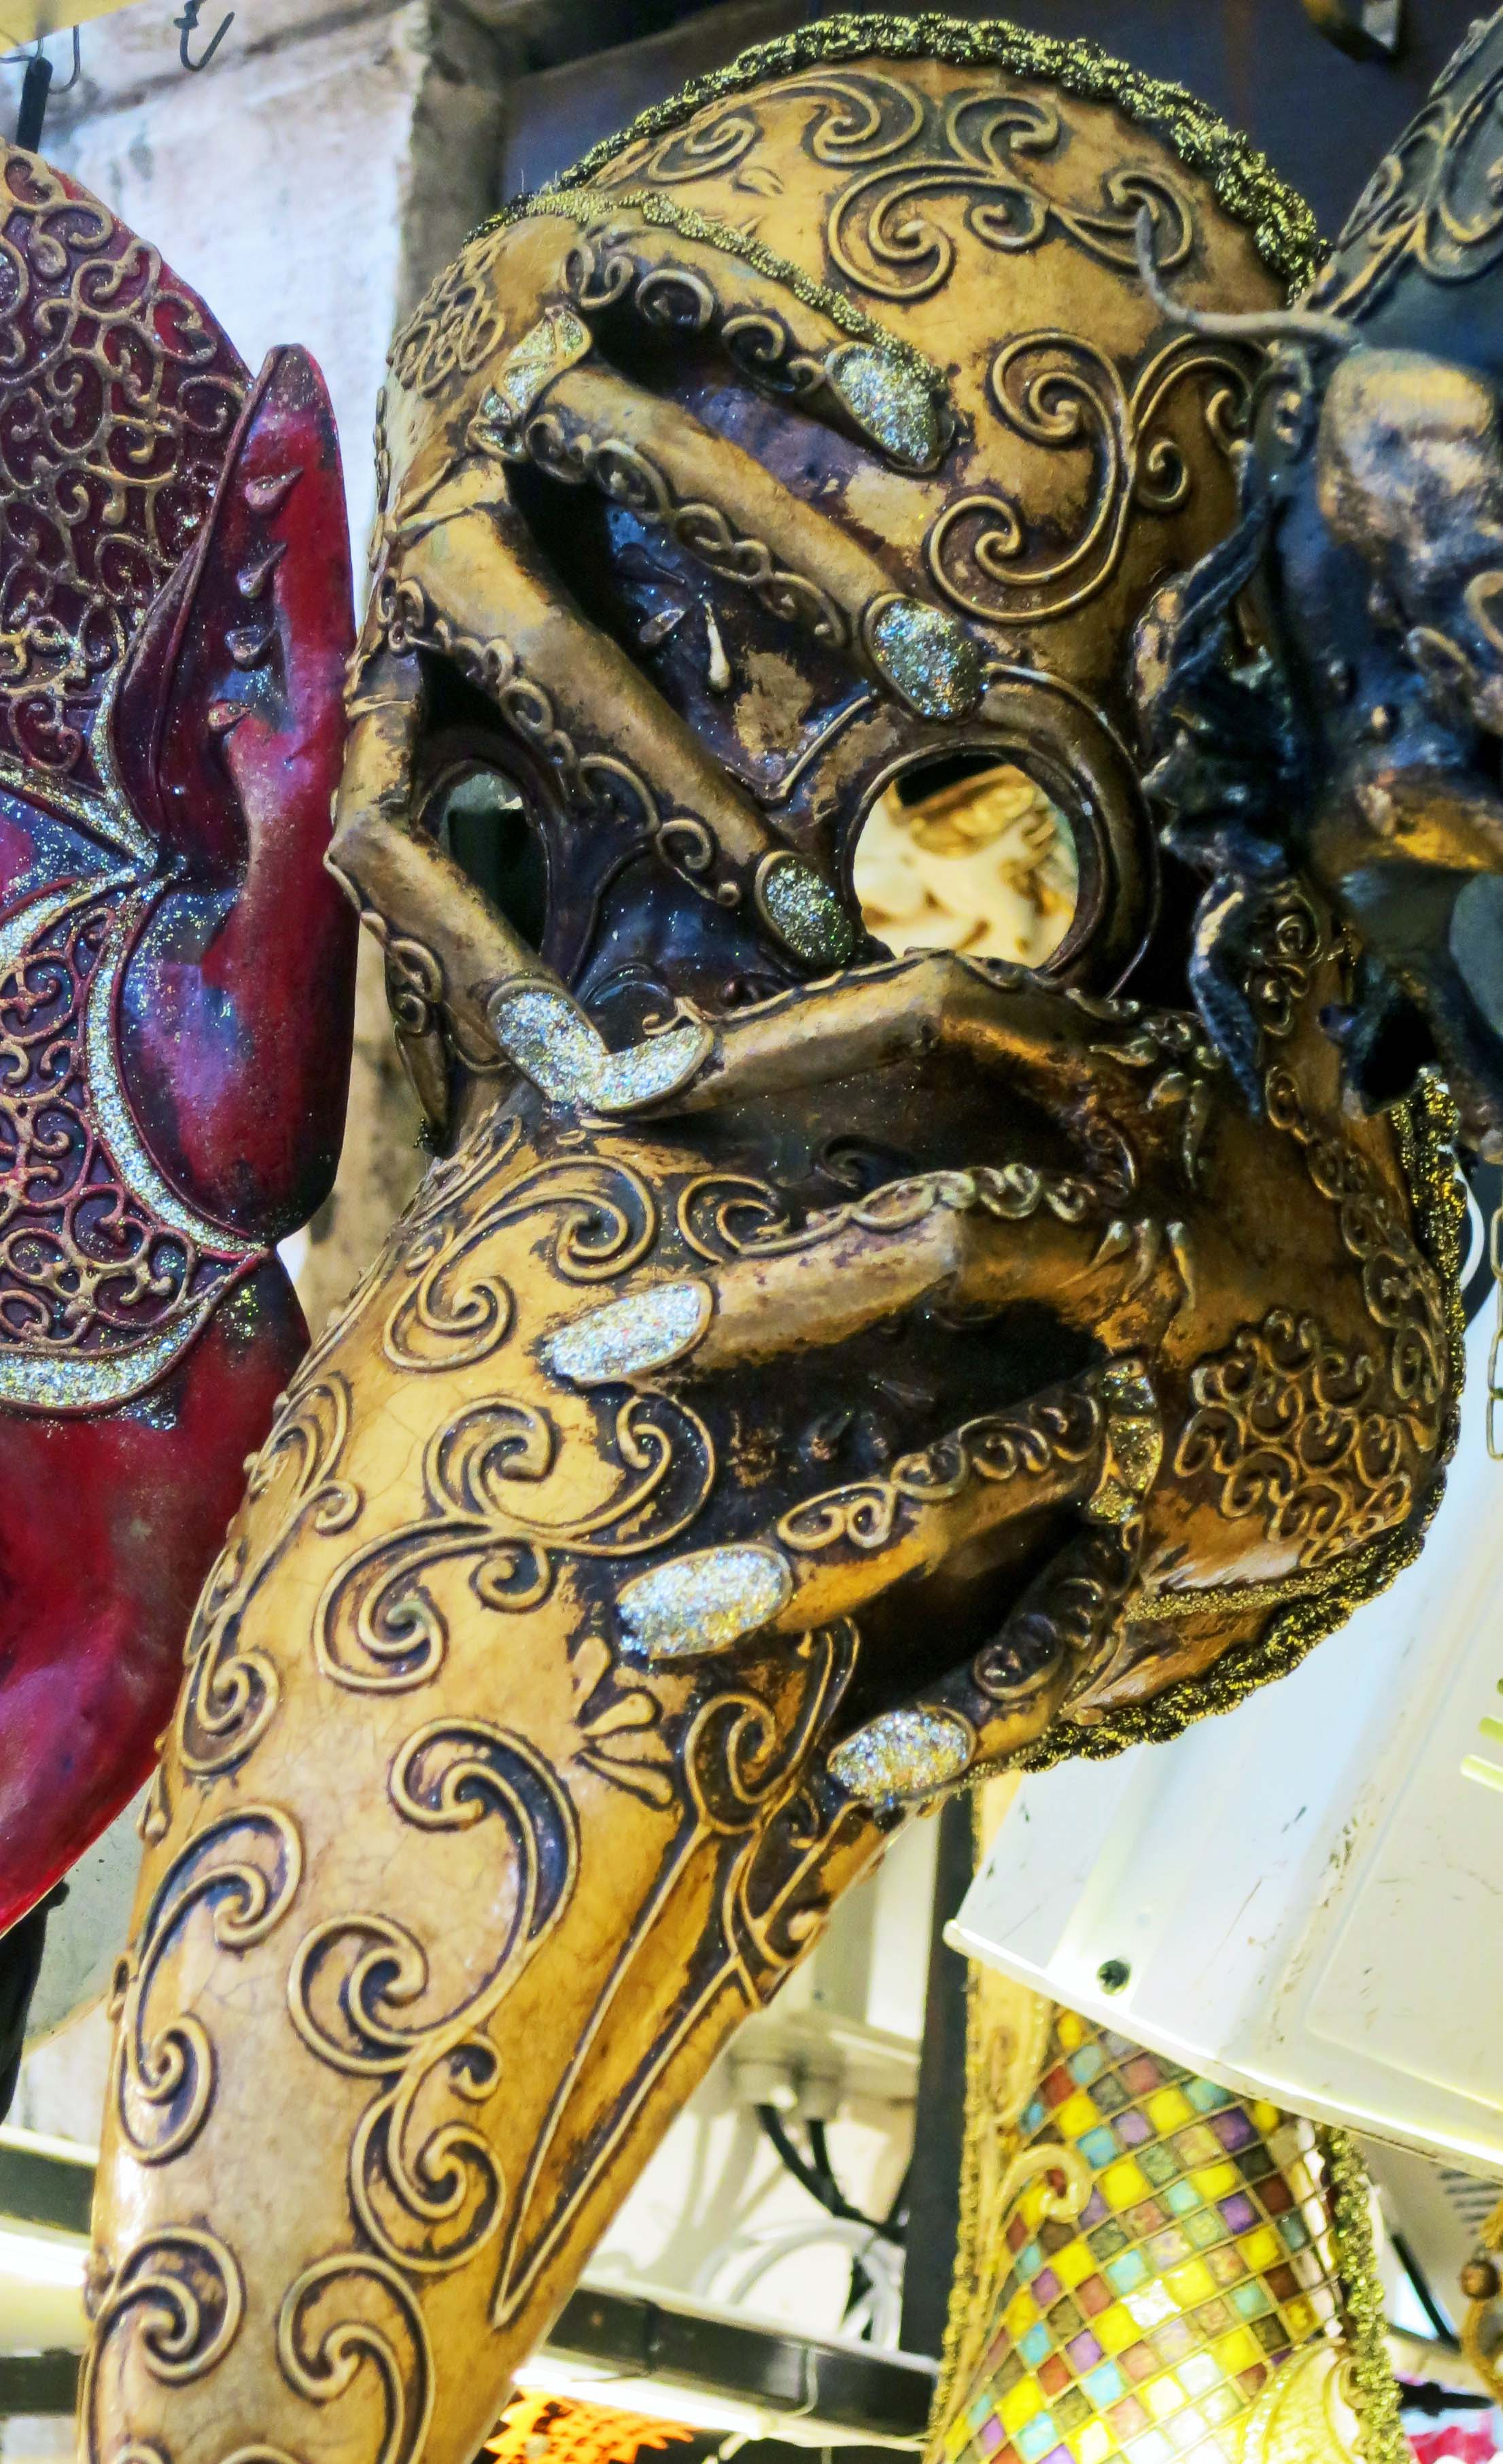 The fingers grasping this Venetian plague mask caught my attention.